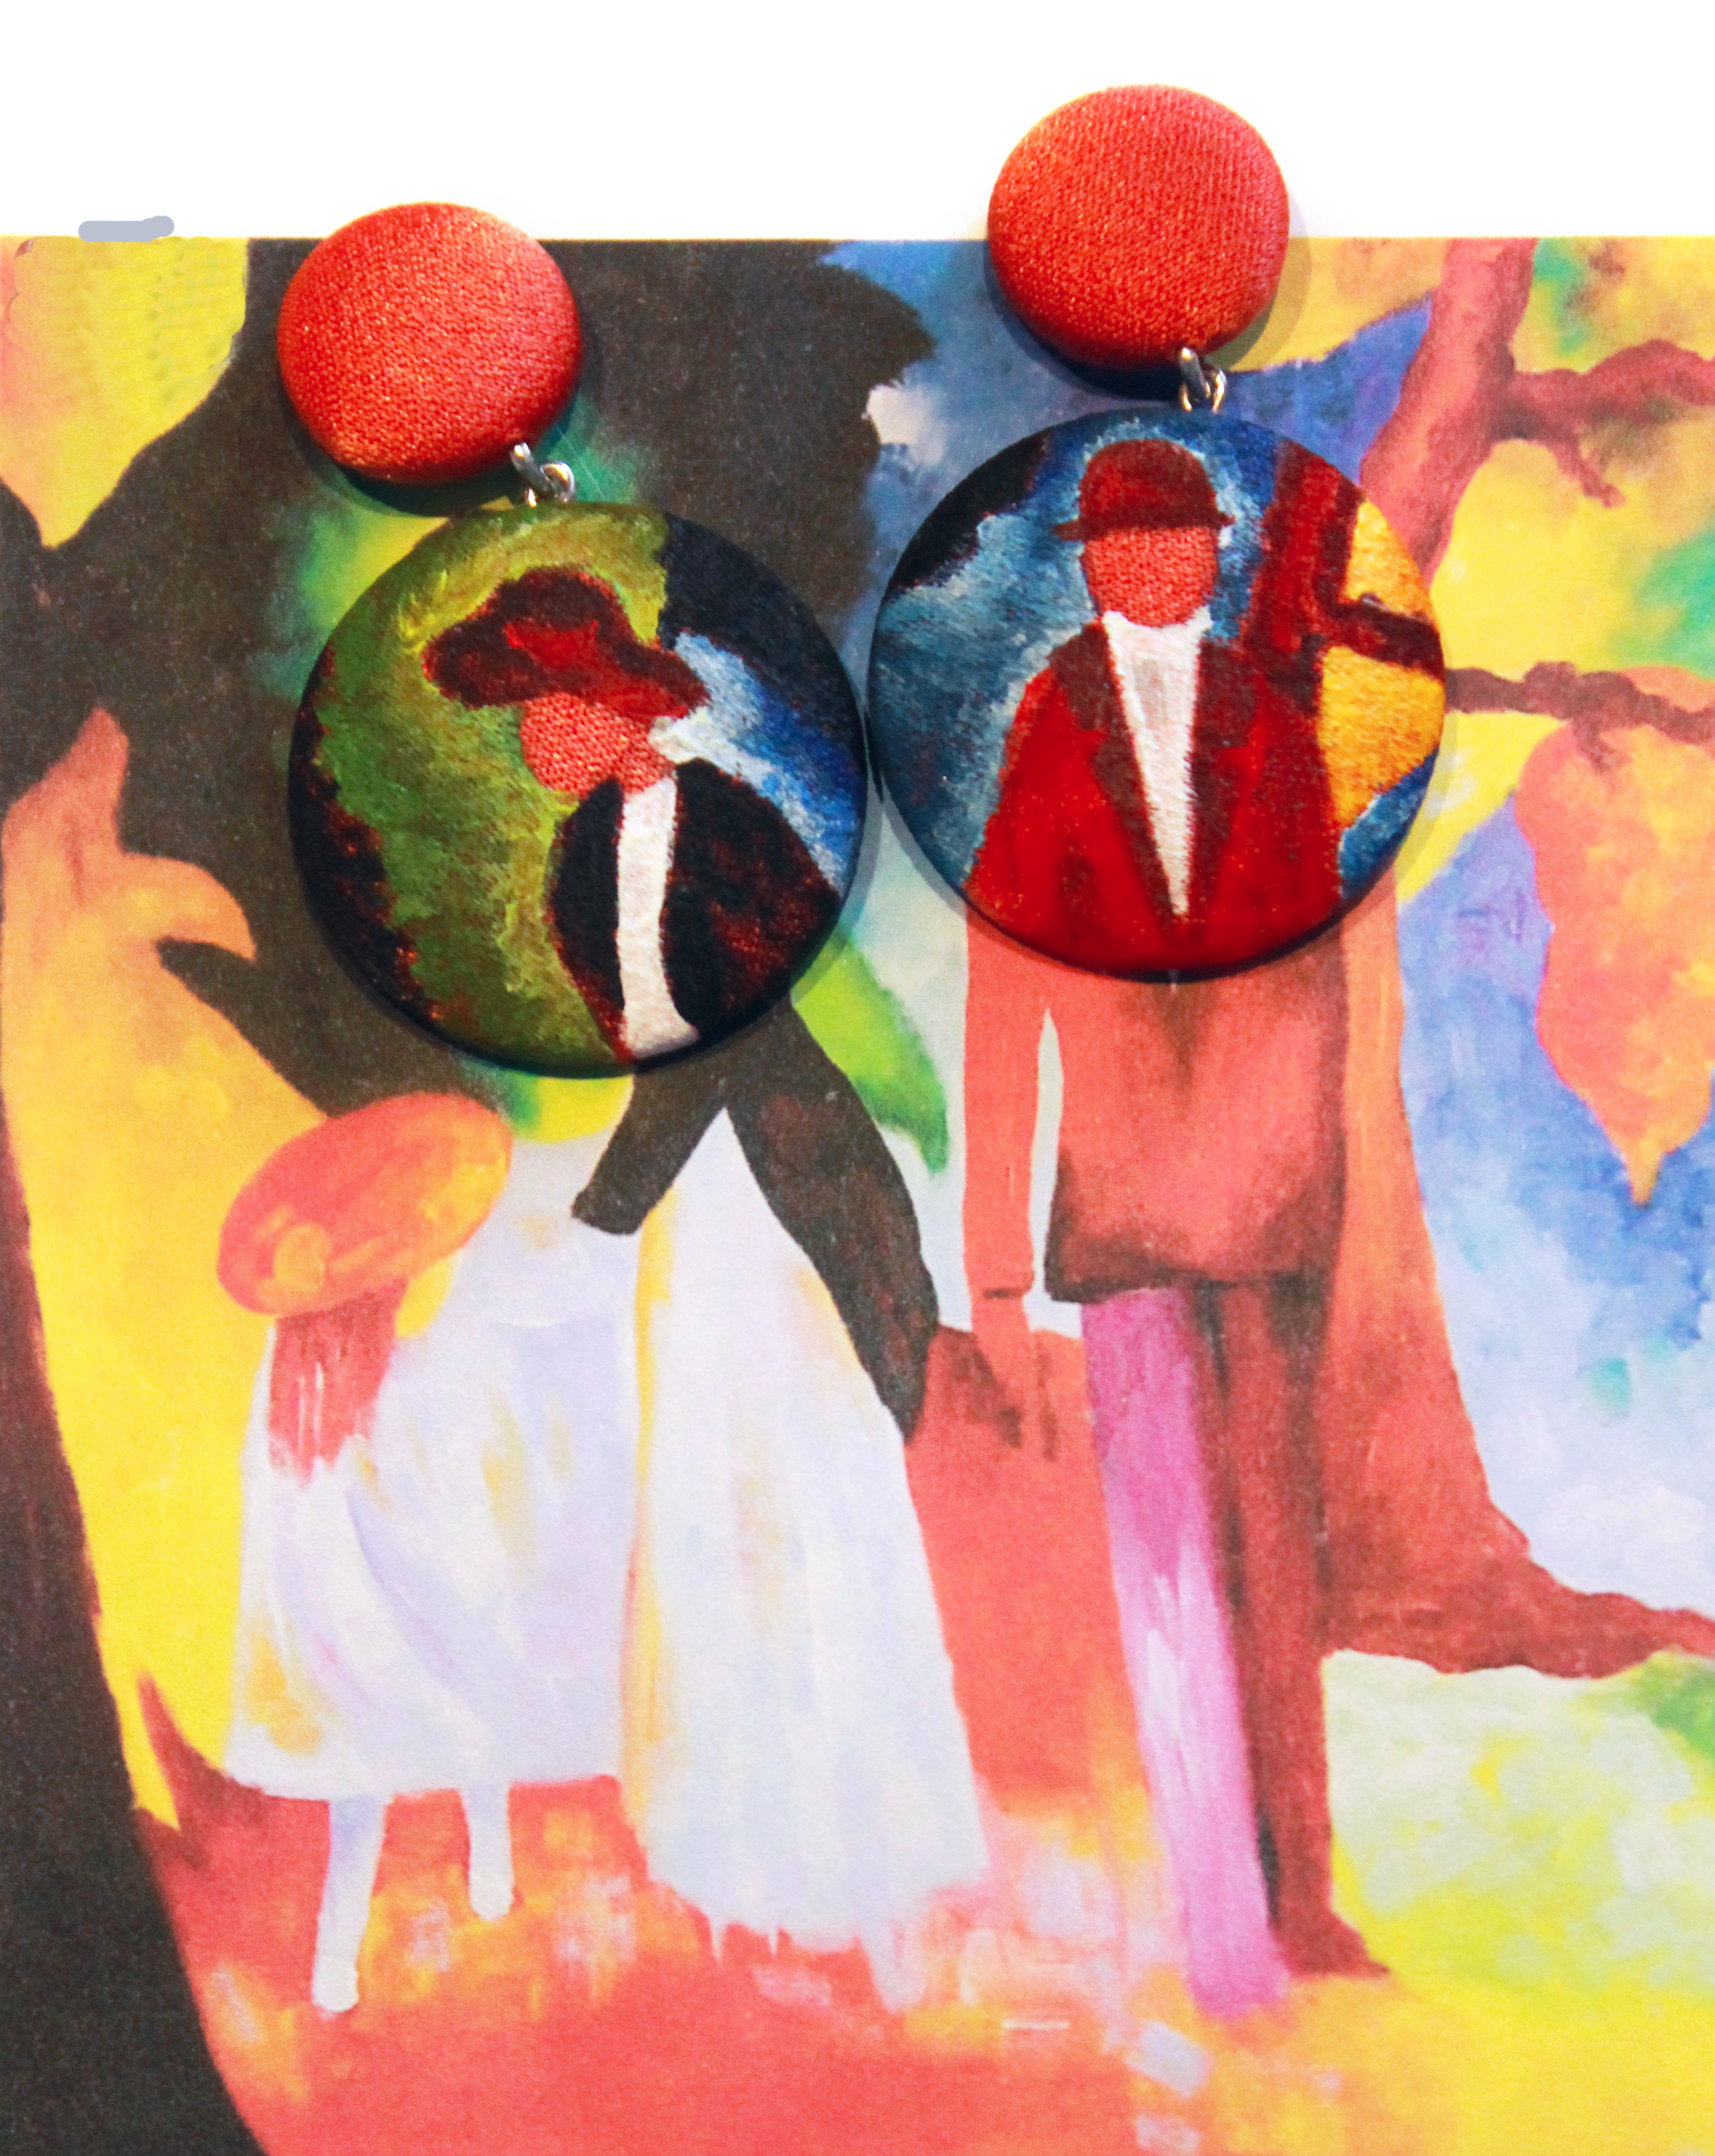 People at the Blue Lake_August Macke